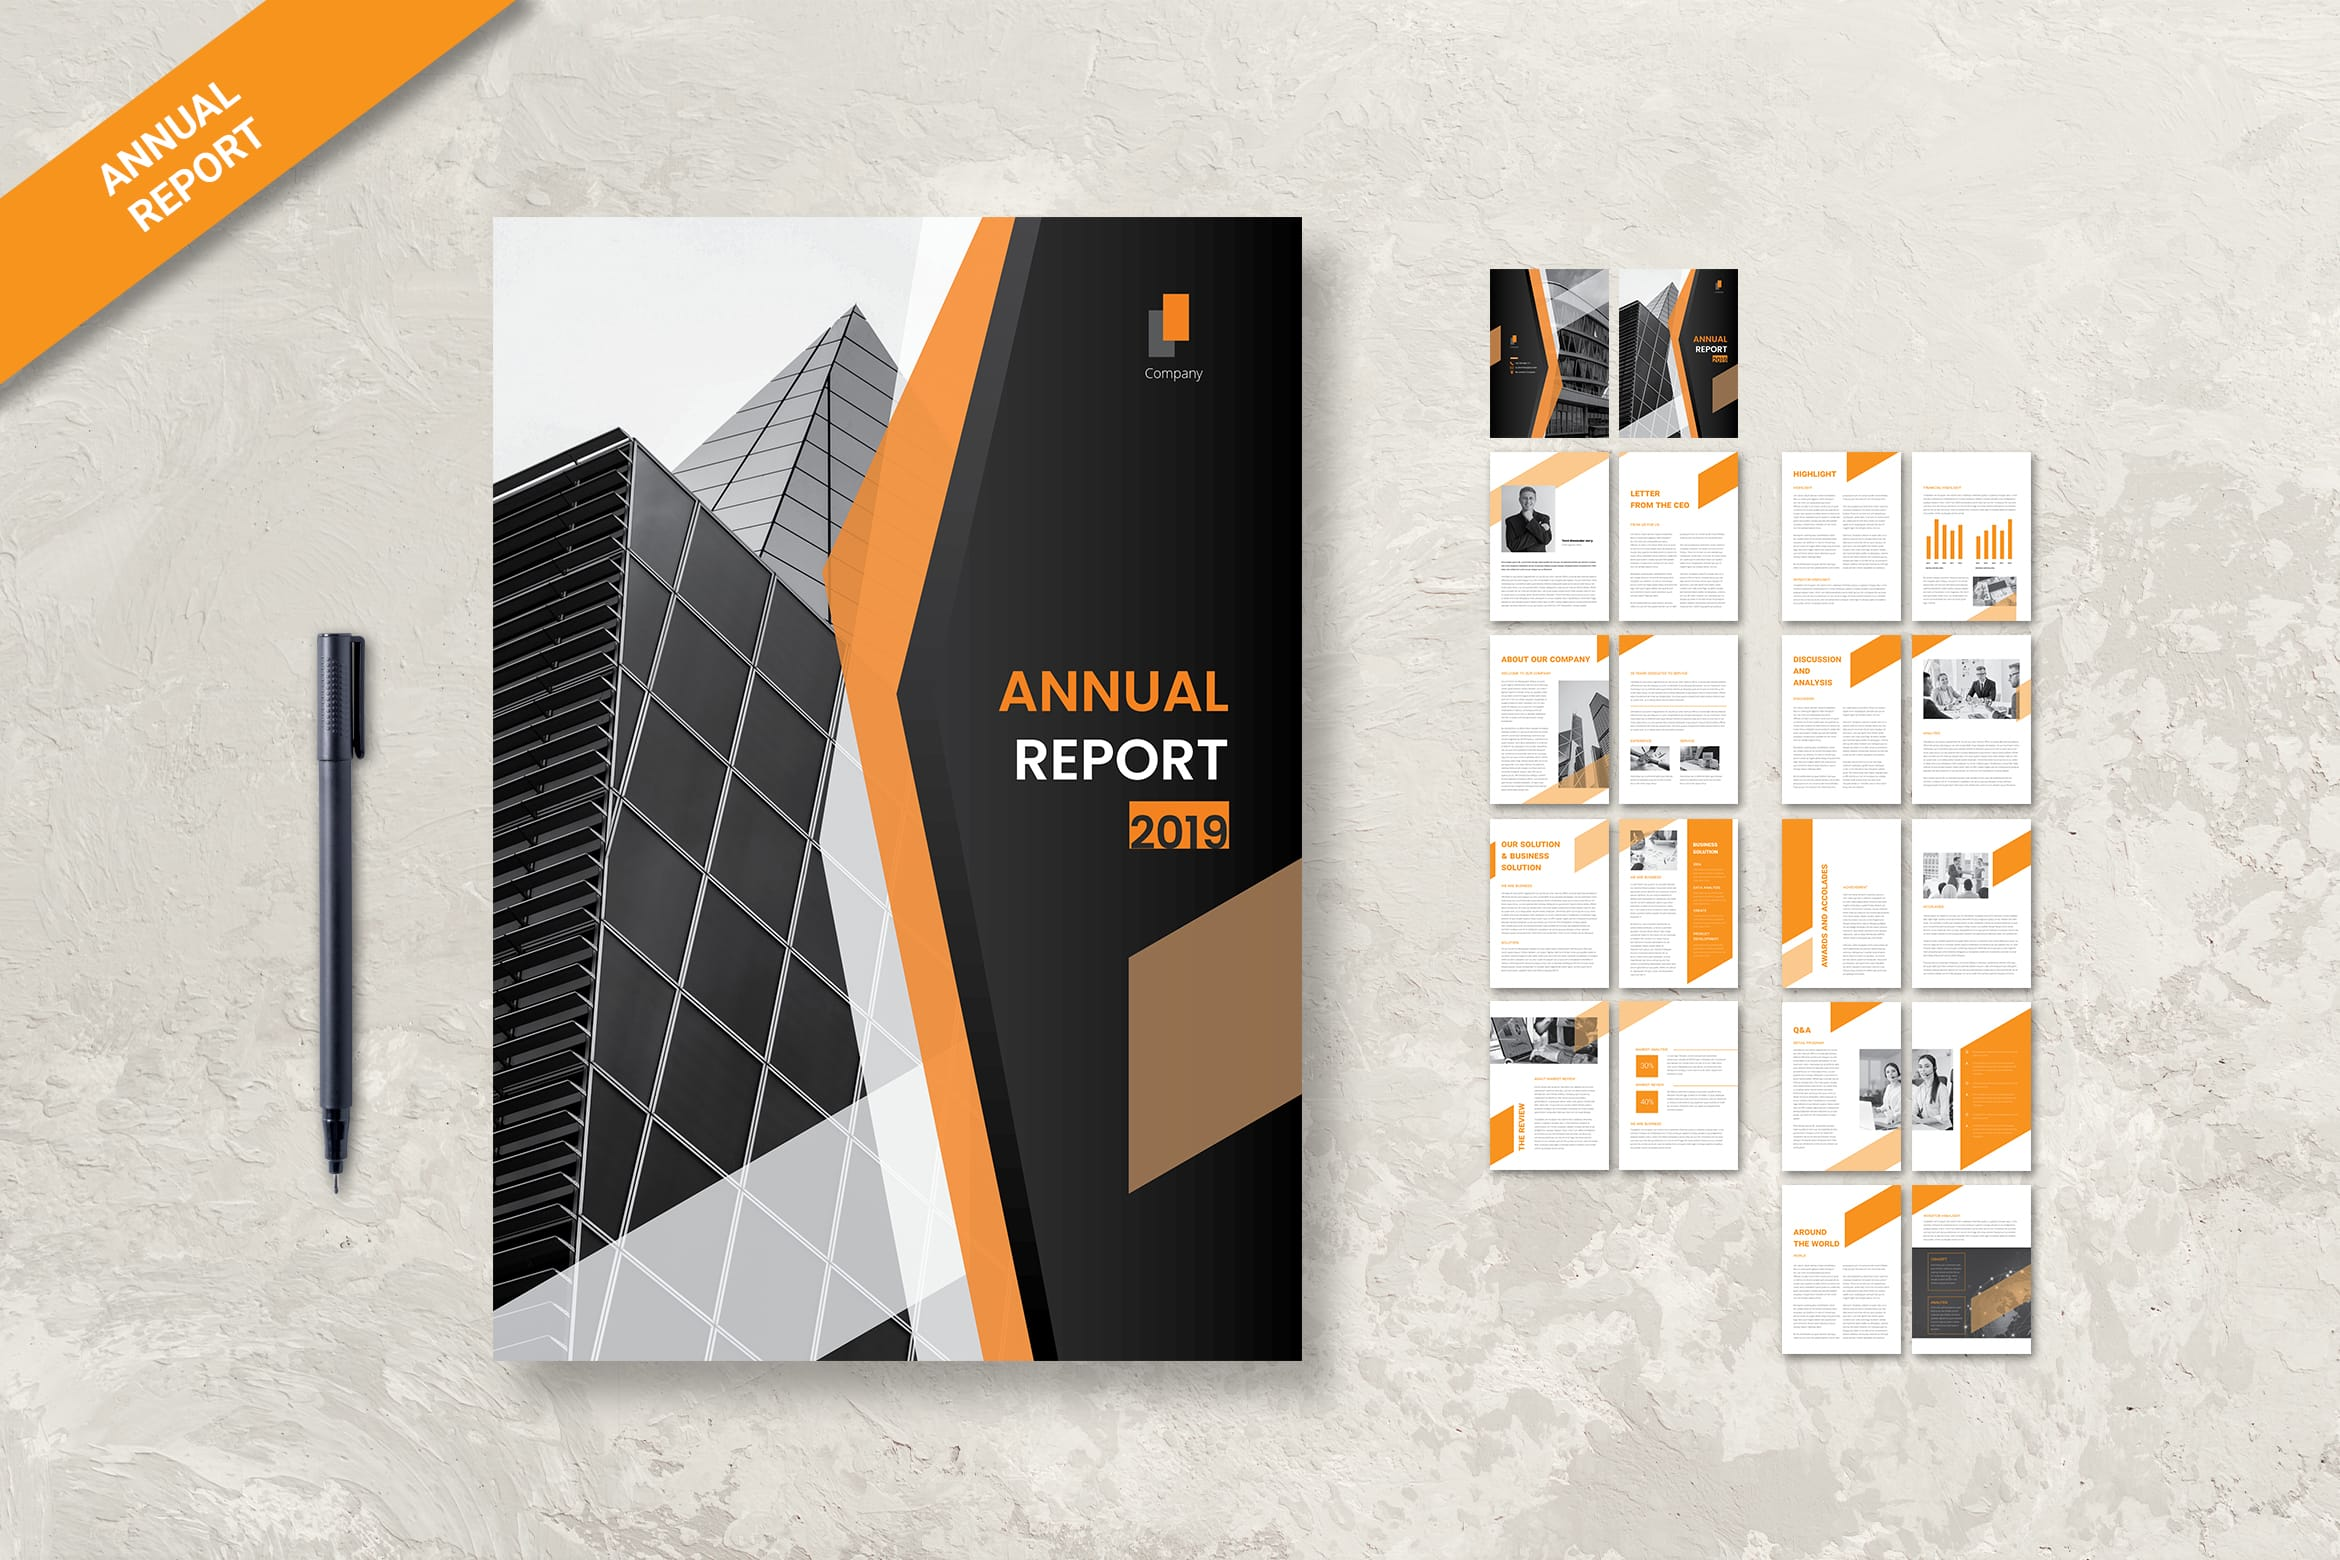 Annual Report - Business Solution